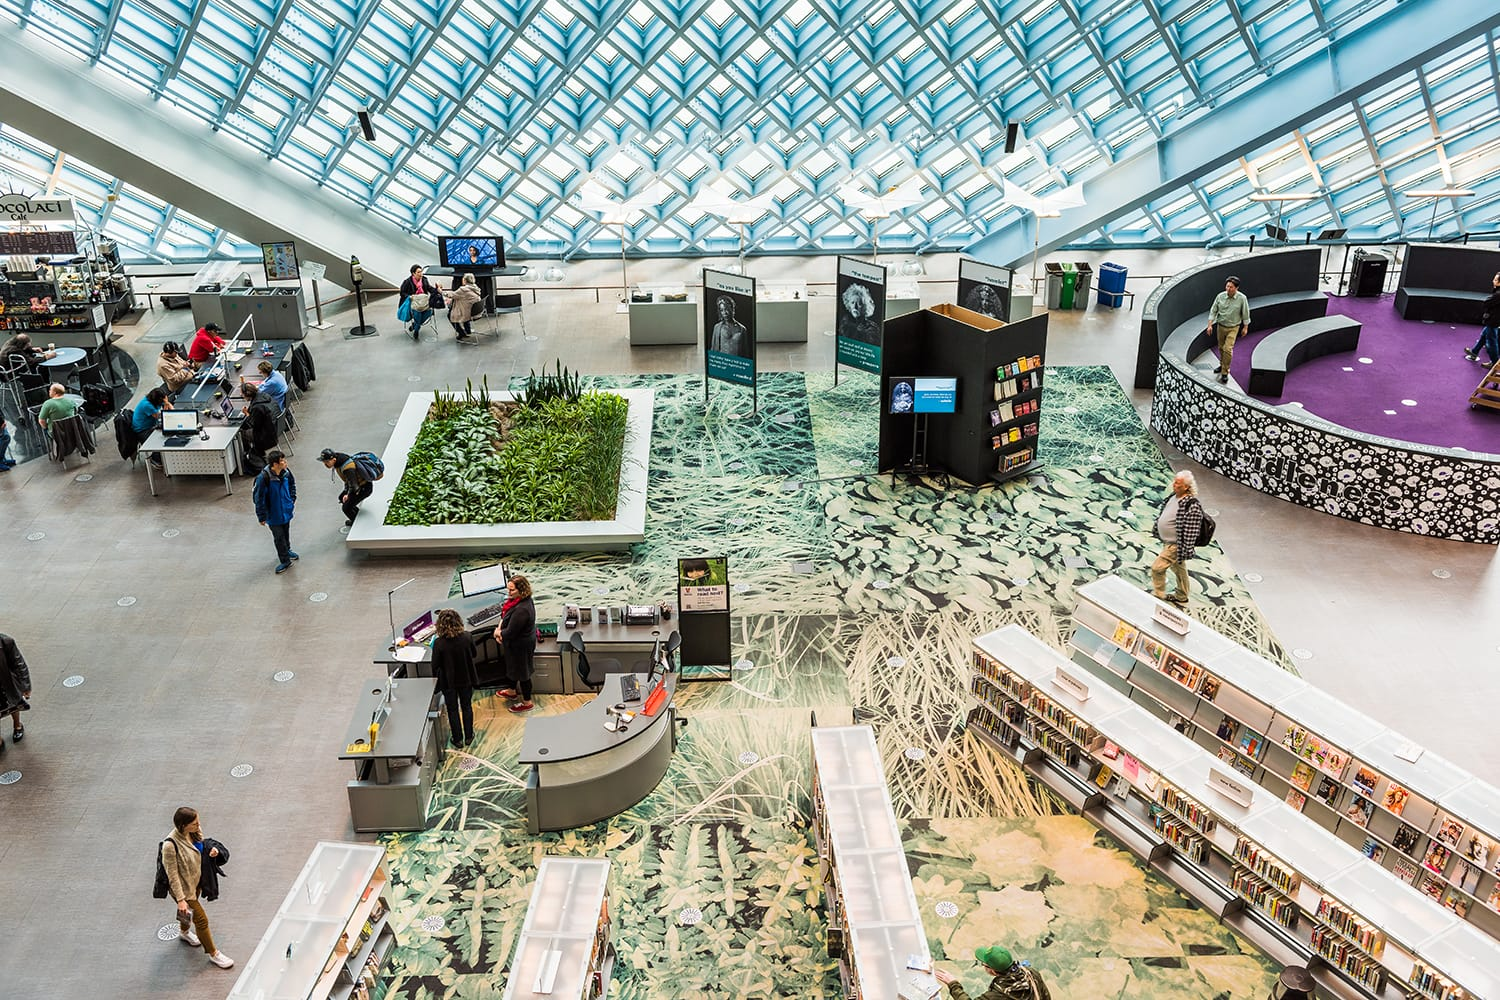 Aerial view of main floor of the public Central Library in Seattle, USA